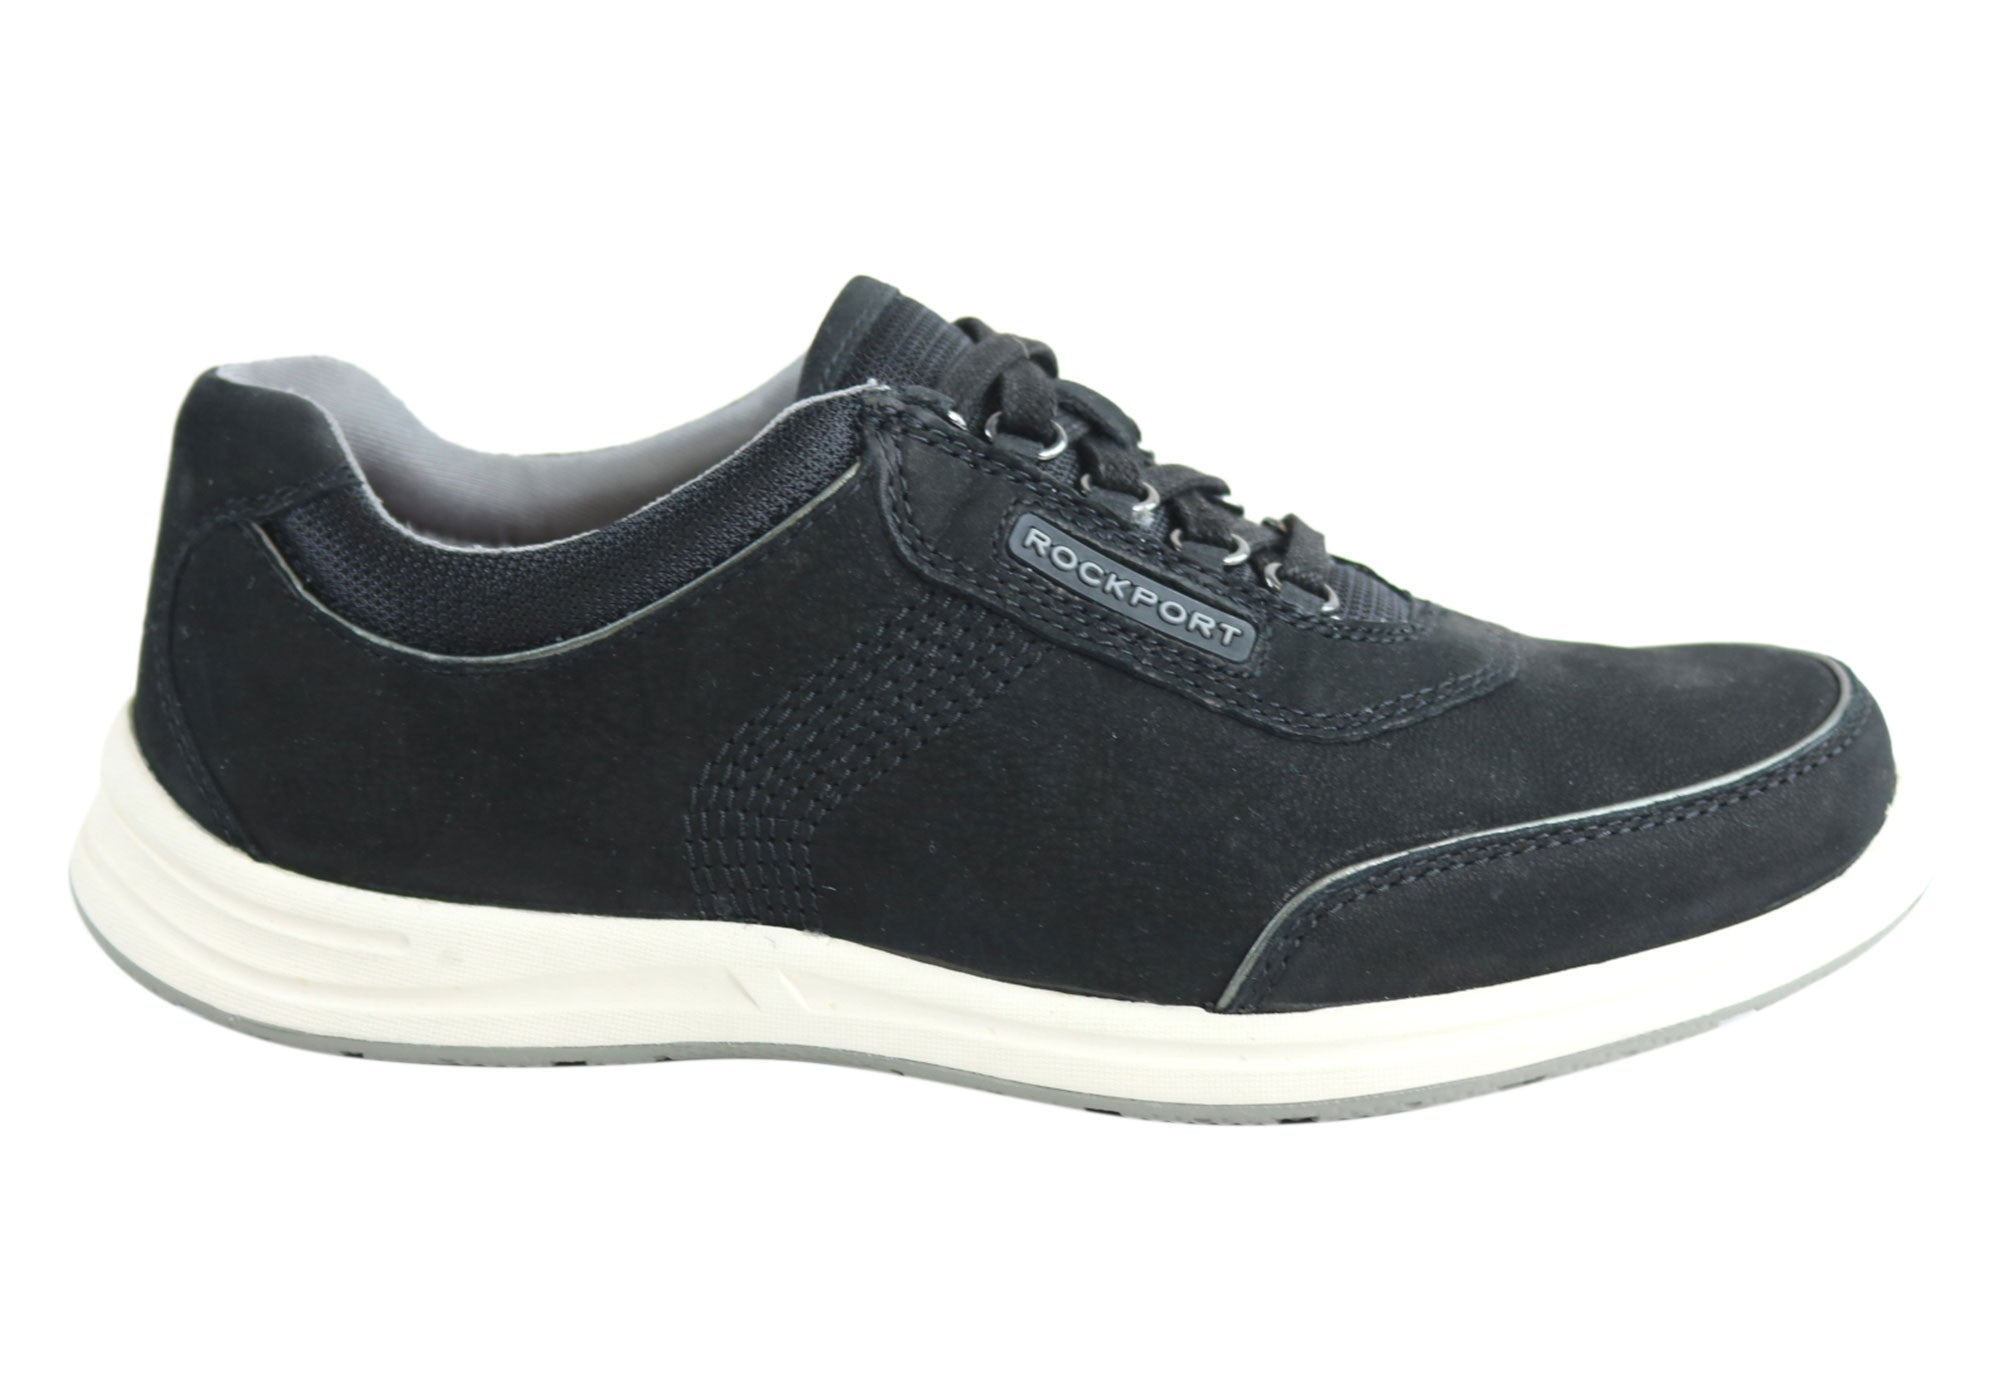 Mens Light Up Shoes For Sale